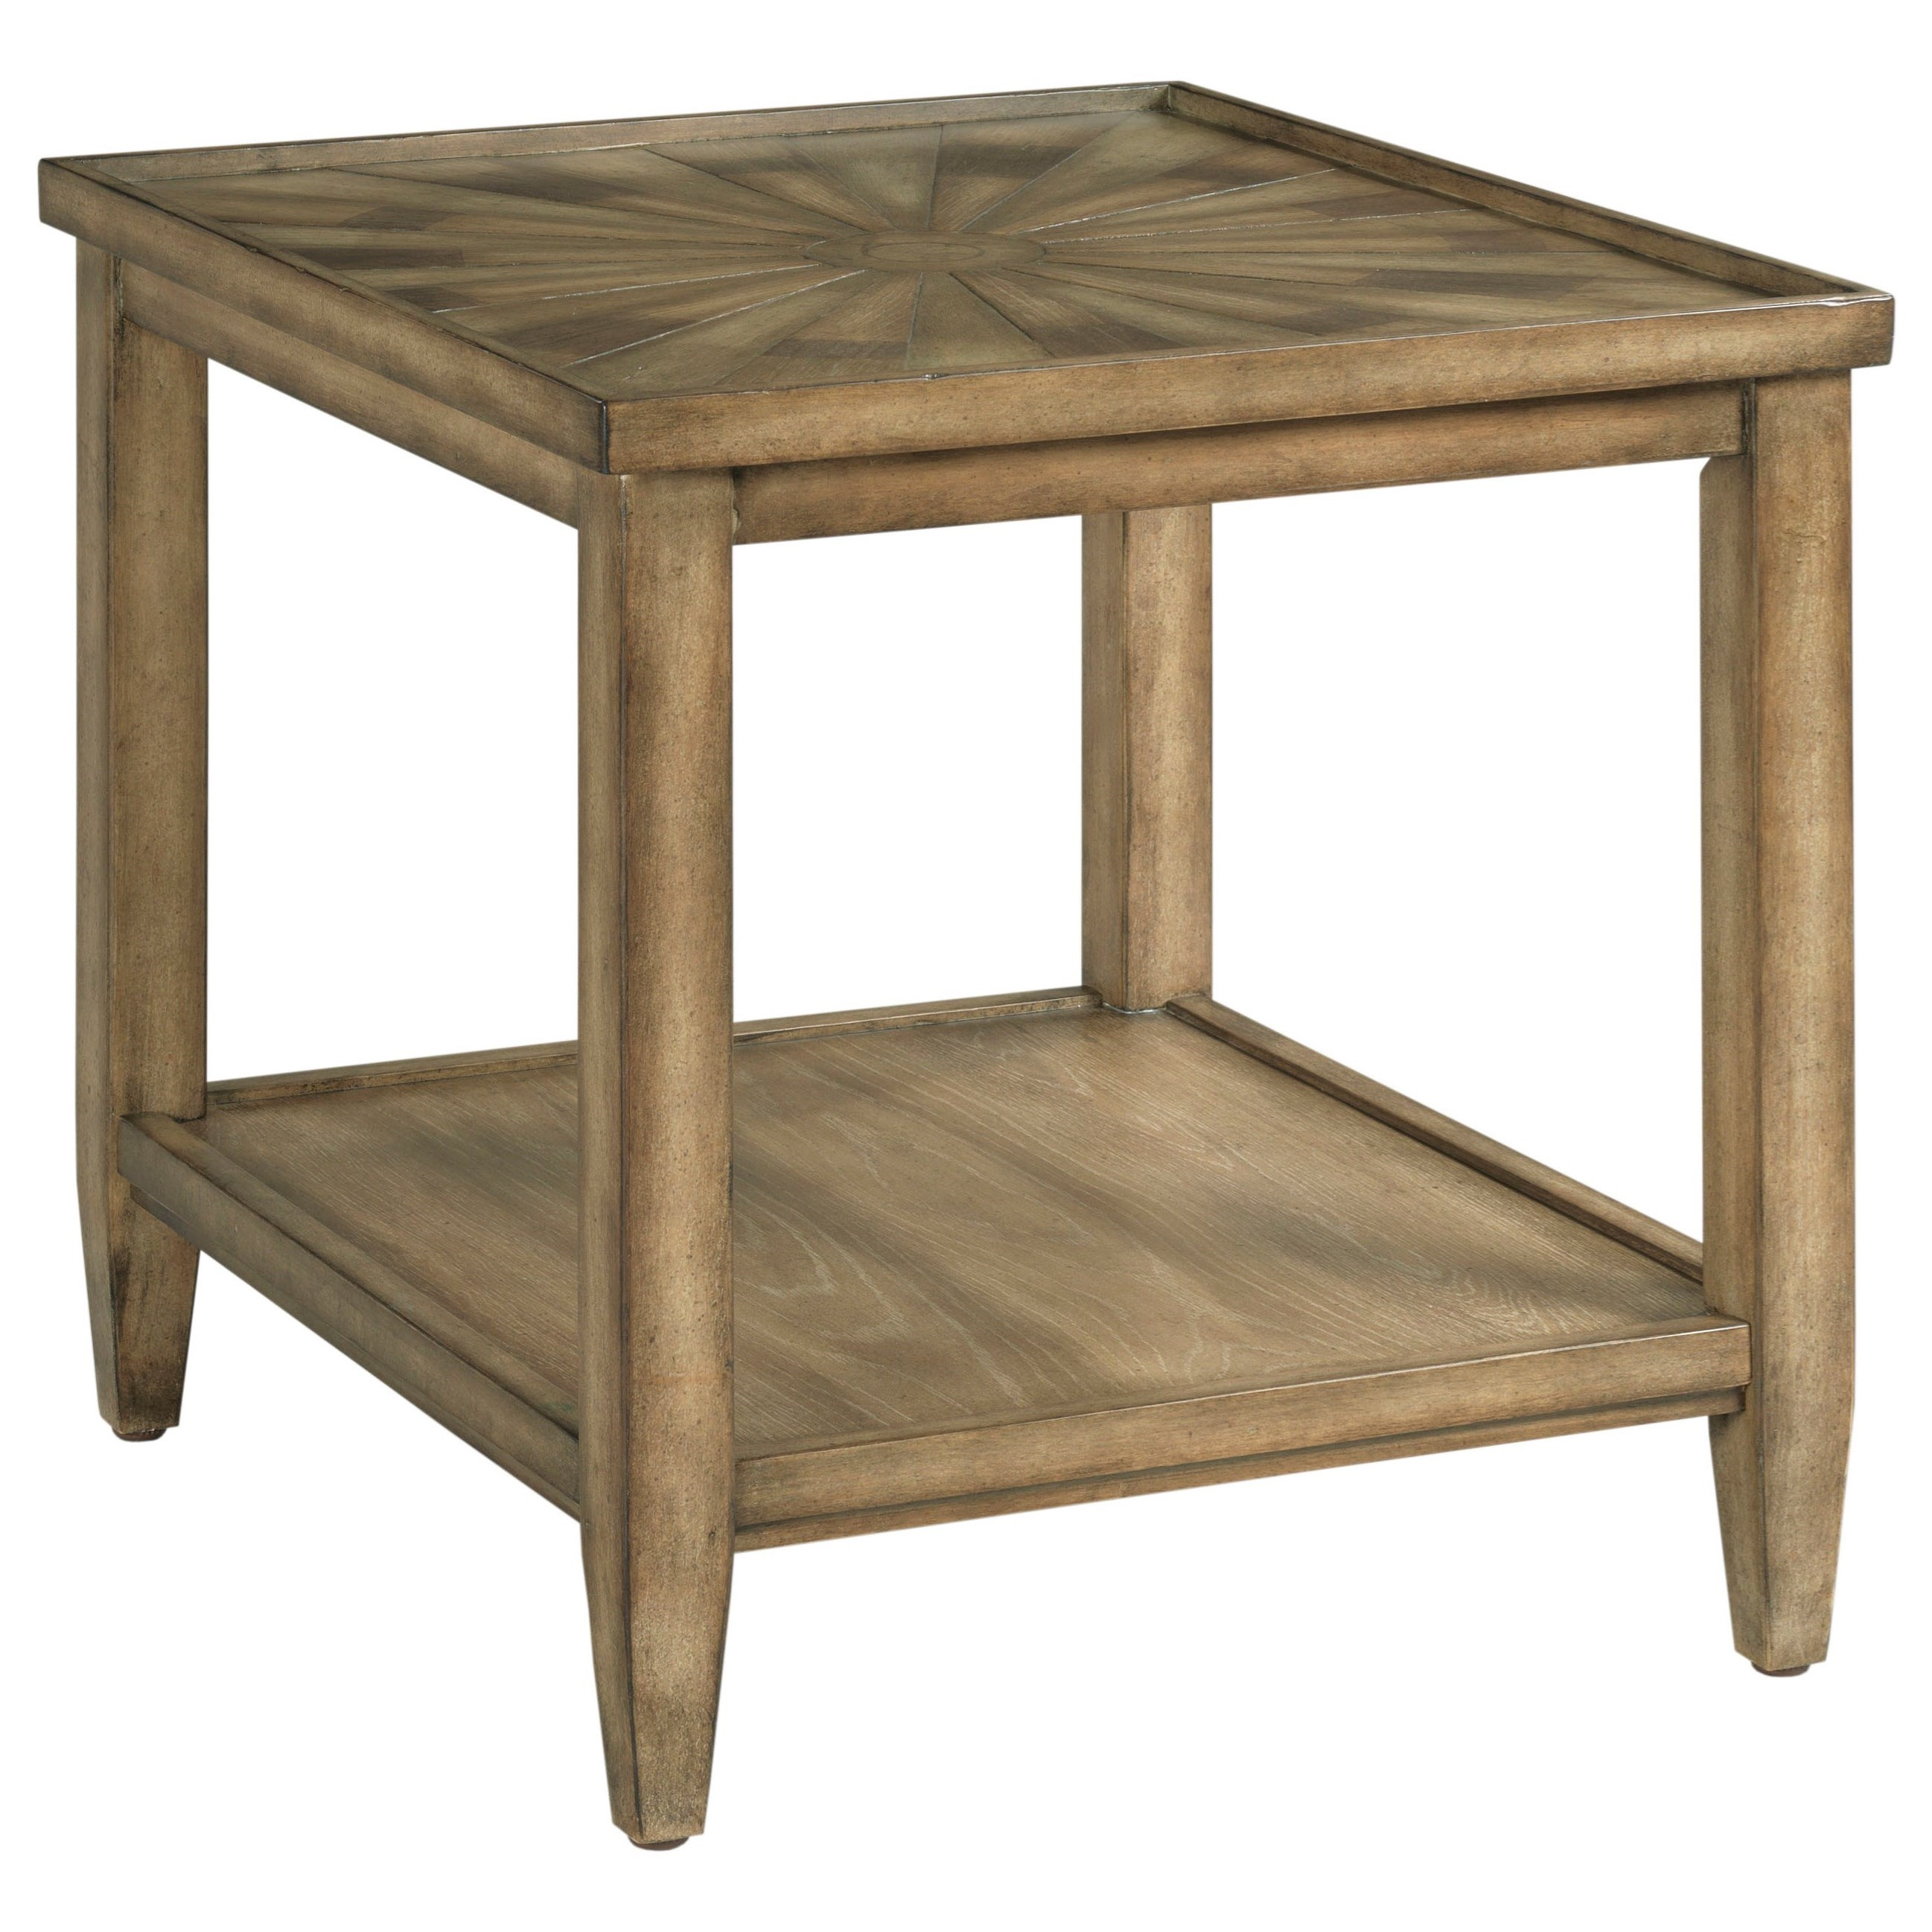 Astor Rectangular End Table by Hammary at Stoney Creek Furniture